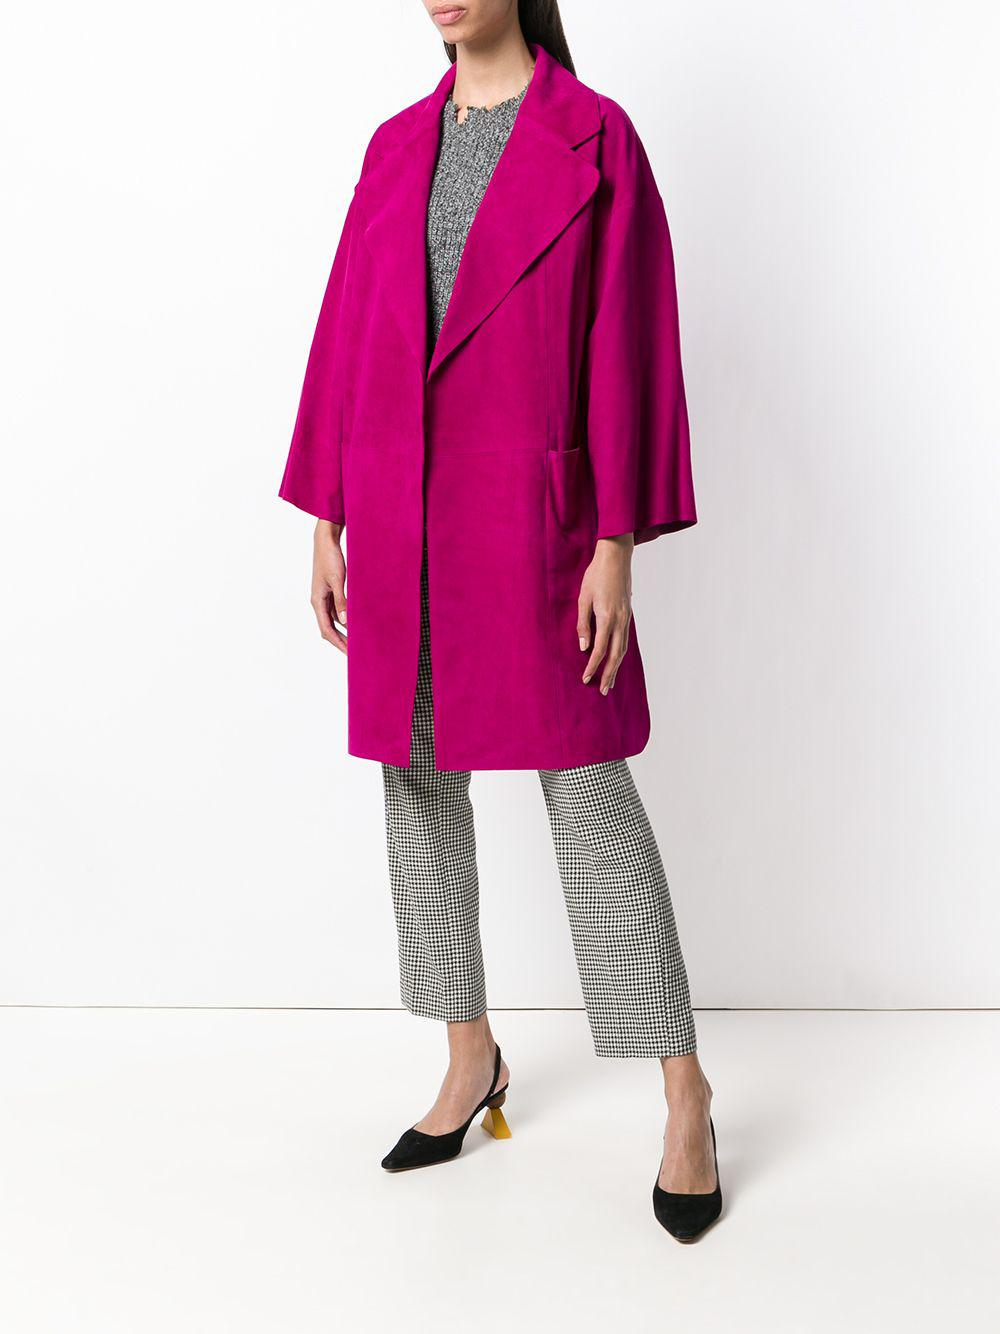 In Theory Cropped Oversized Coat Pink Lyst Sleeve wT0RT1Iq